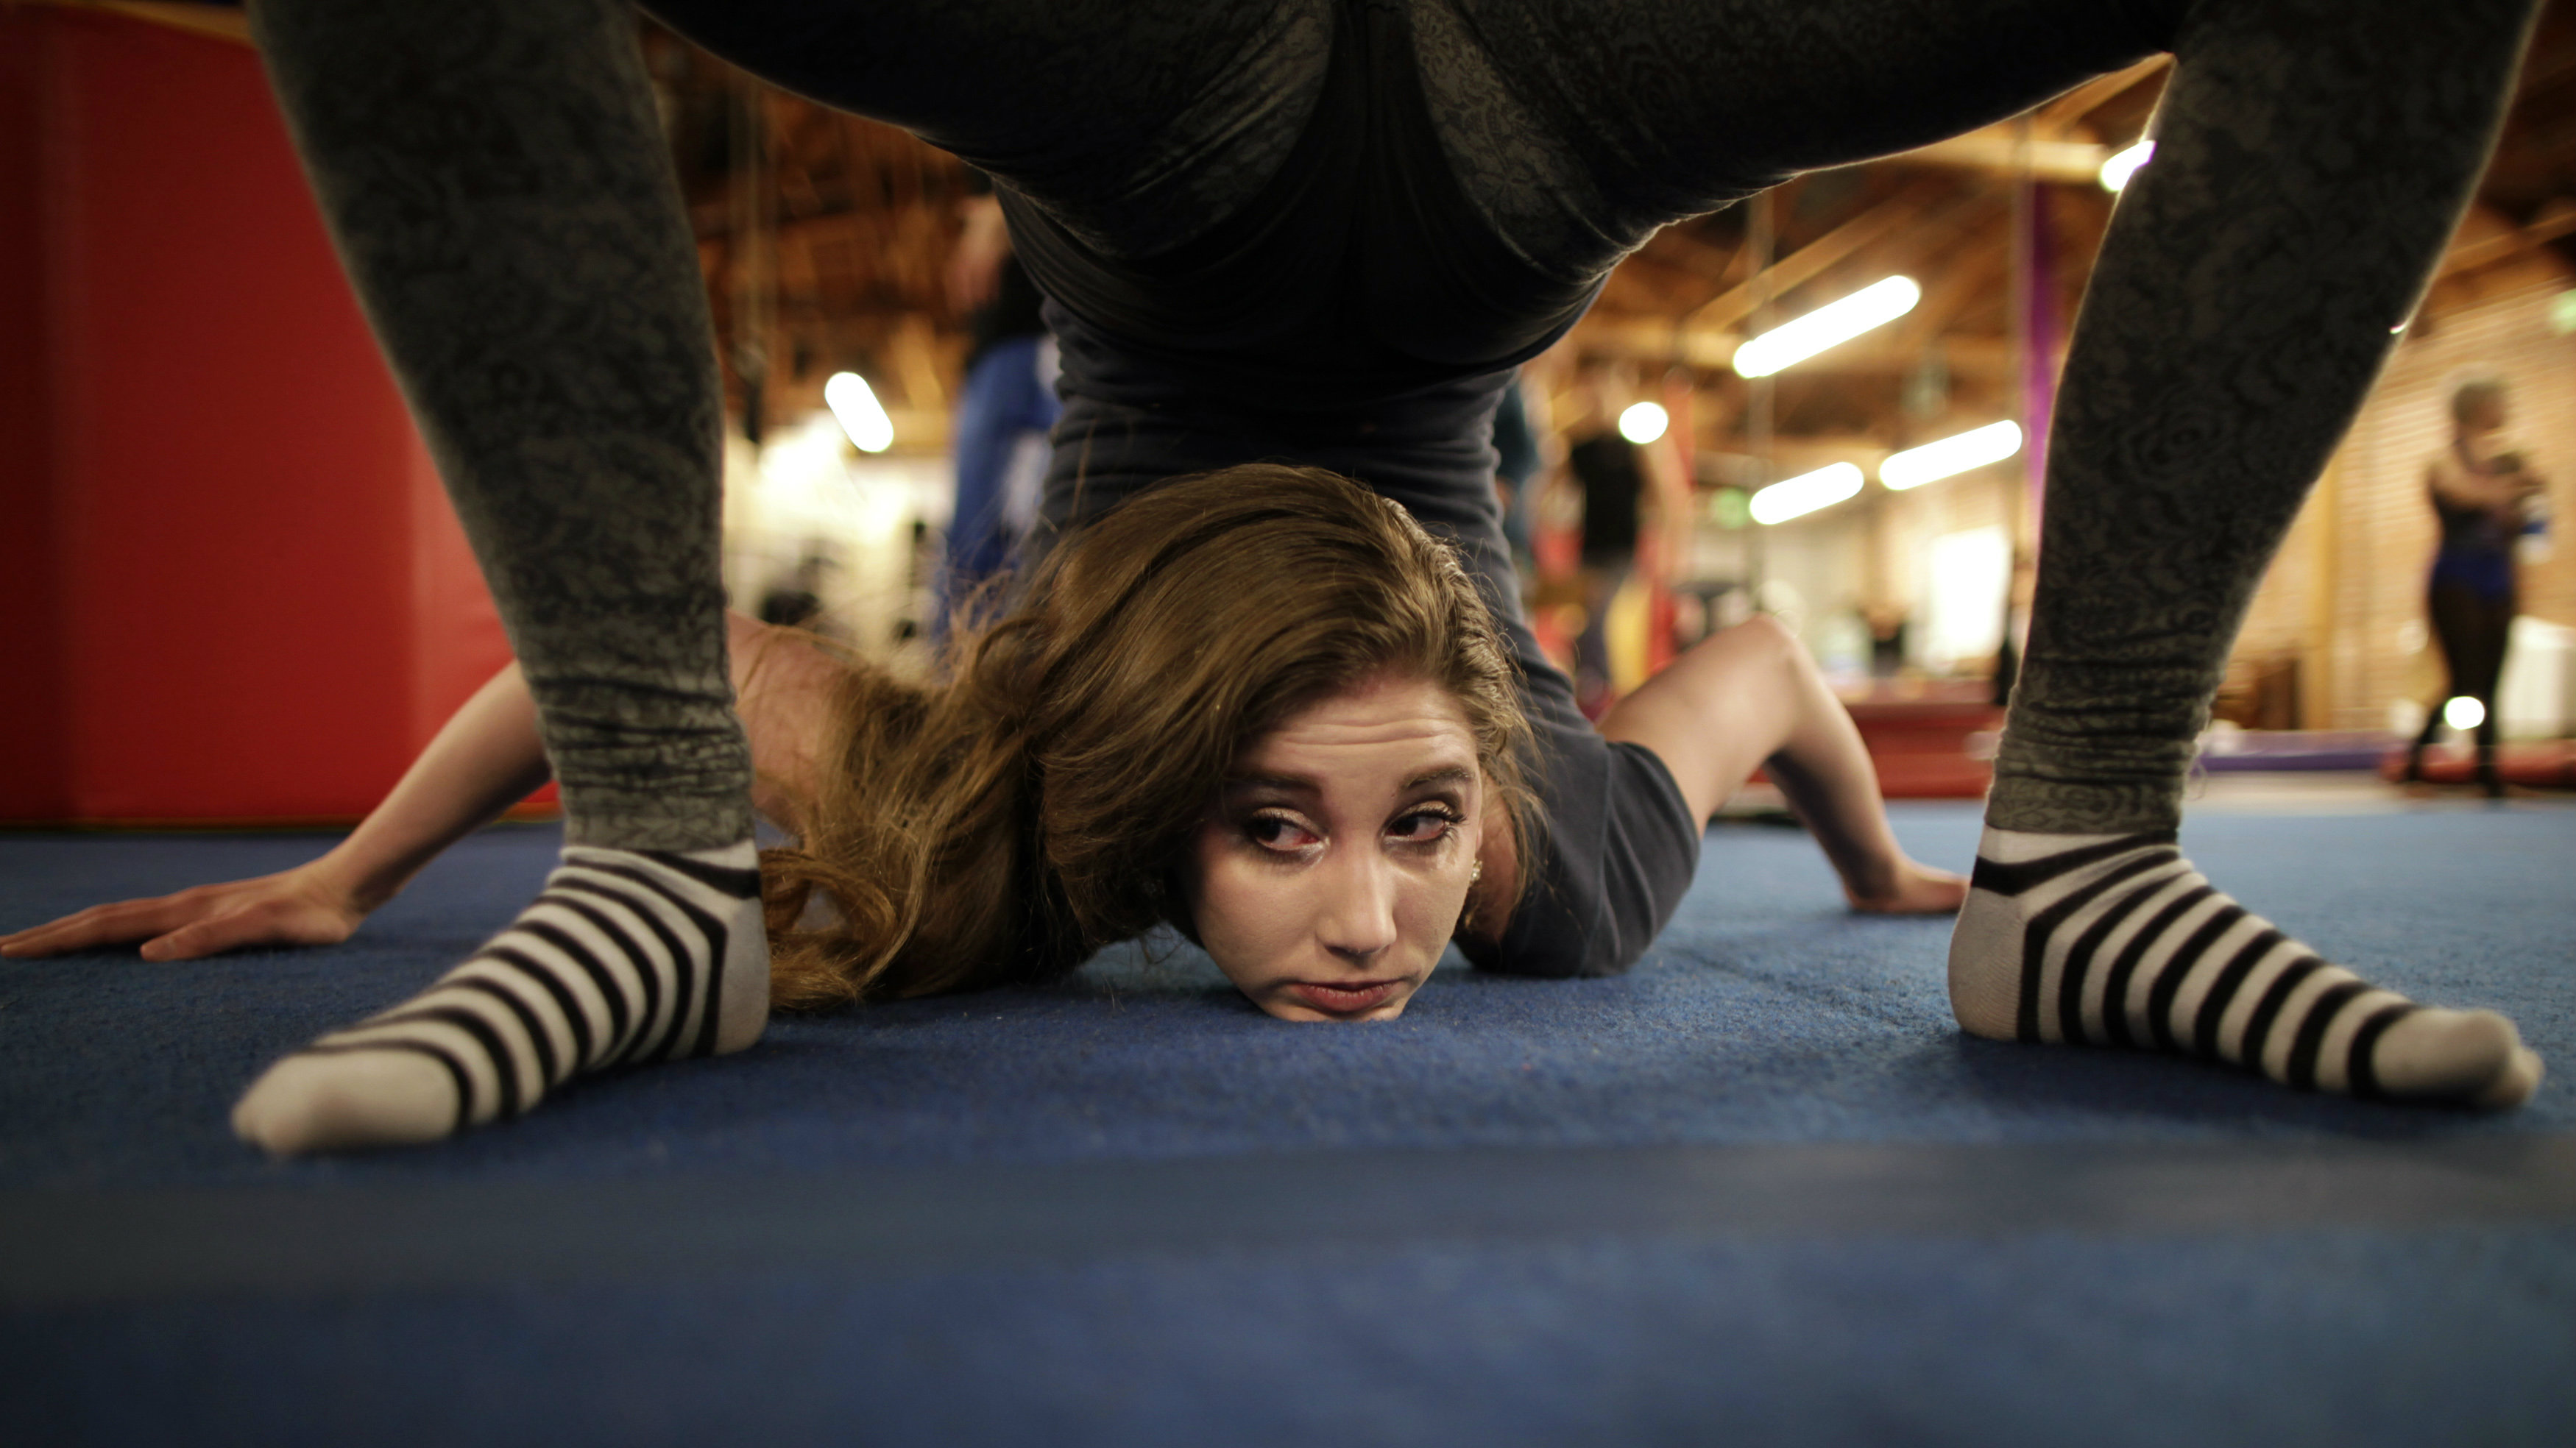 Scarlett Stoever, 23, trains at Cirque School in Hollywood, Los Angeles, California March 1, 2012. Circus professionals train at the school, which also teaches recreational circus classes to the public. REUTERS/Lucy Nicholson (UNITED STATES - Tags: SOCIETY TPX IMAGES OF THE DAY)